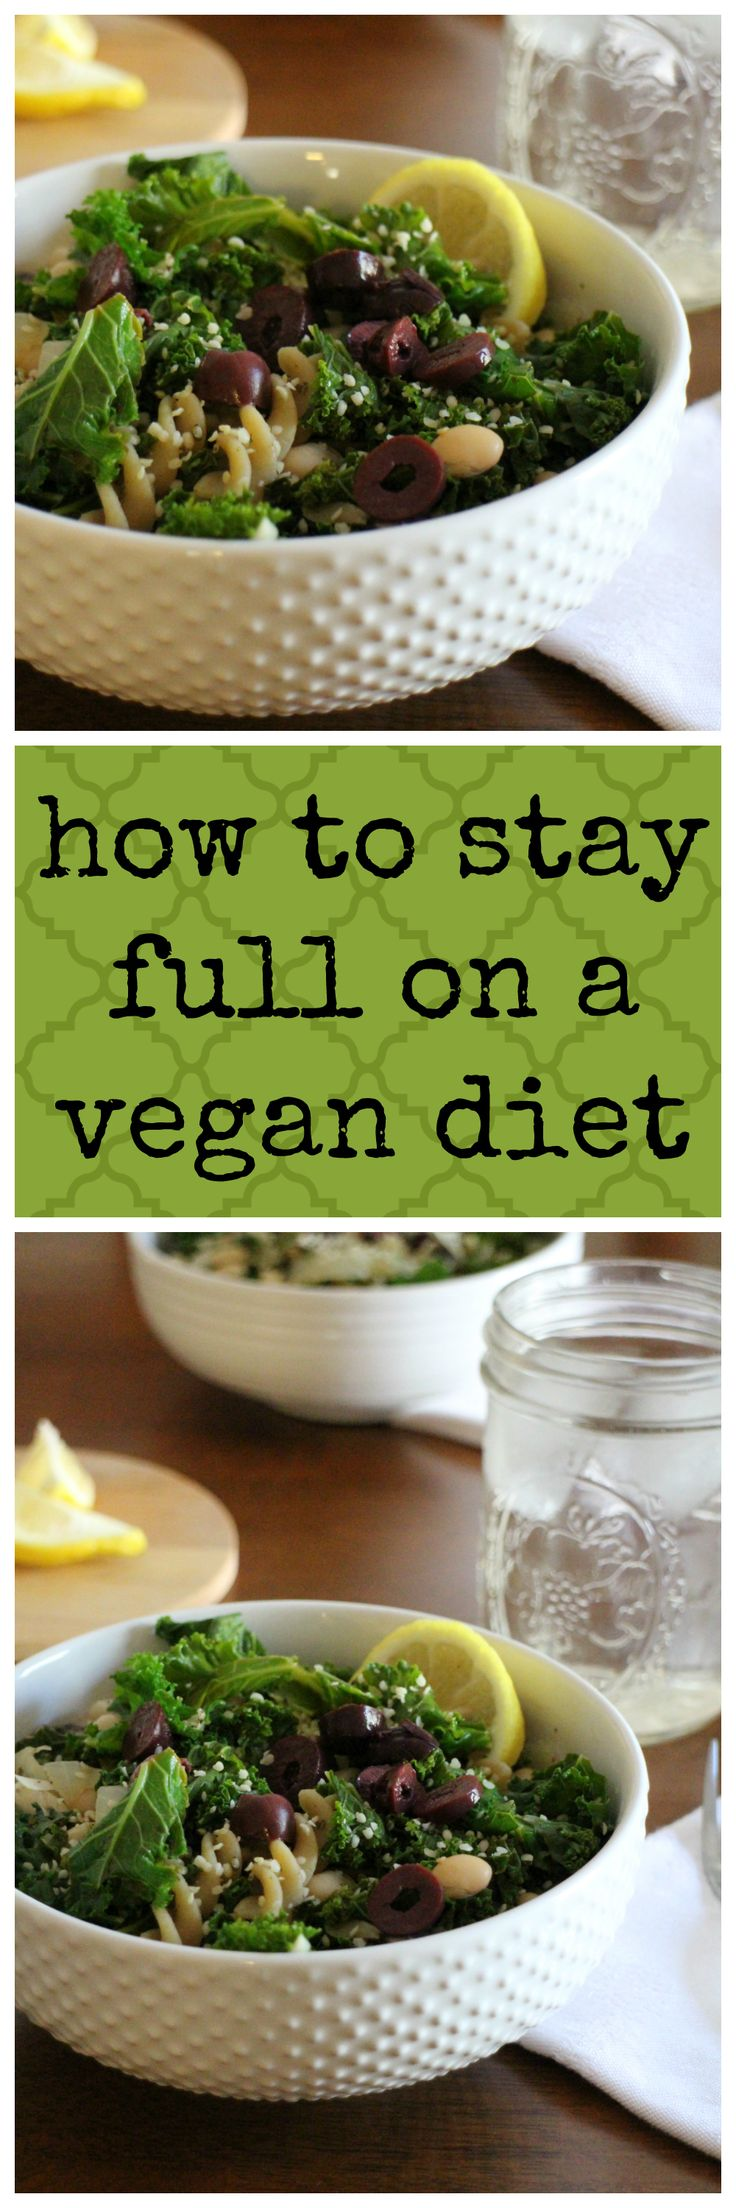 Worried about feeling hungry on a vegan diet? Here's what works for me to feel full and satiated. | cadryskitchen.com